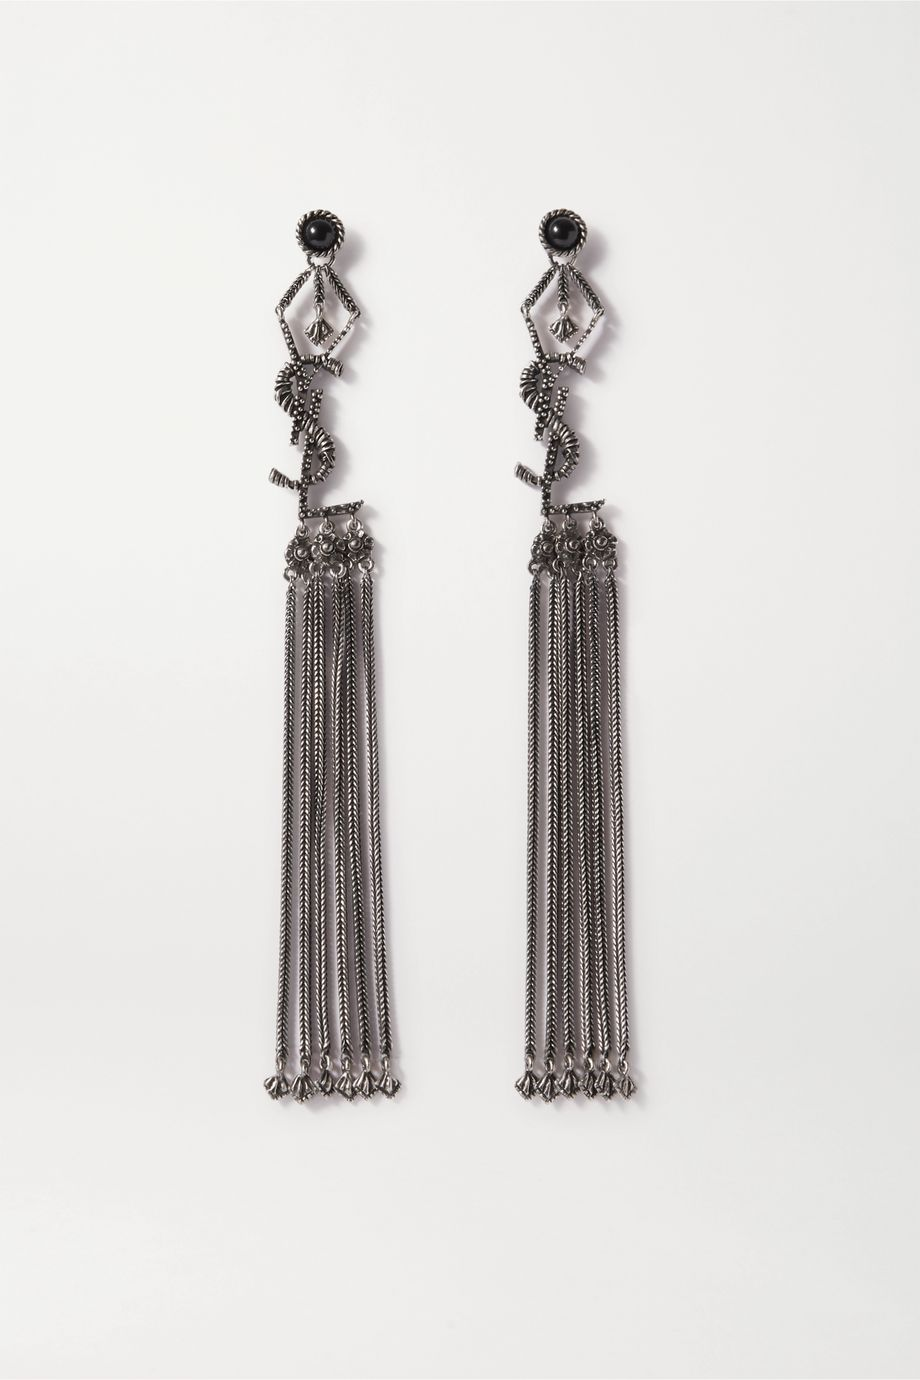 SAINT LAURENT Tasseled blackened silver-tone earrings